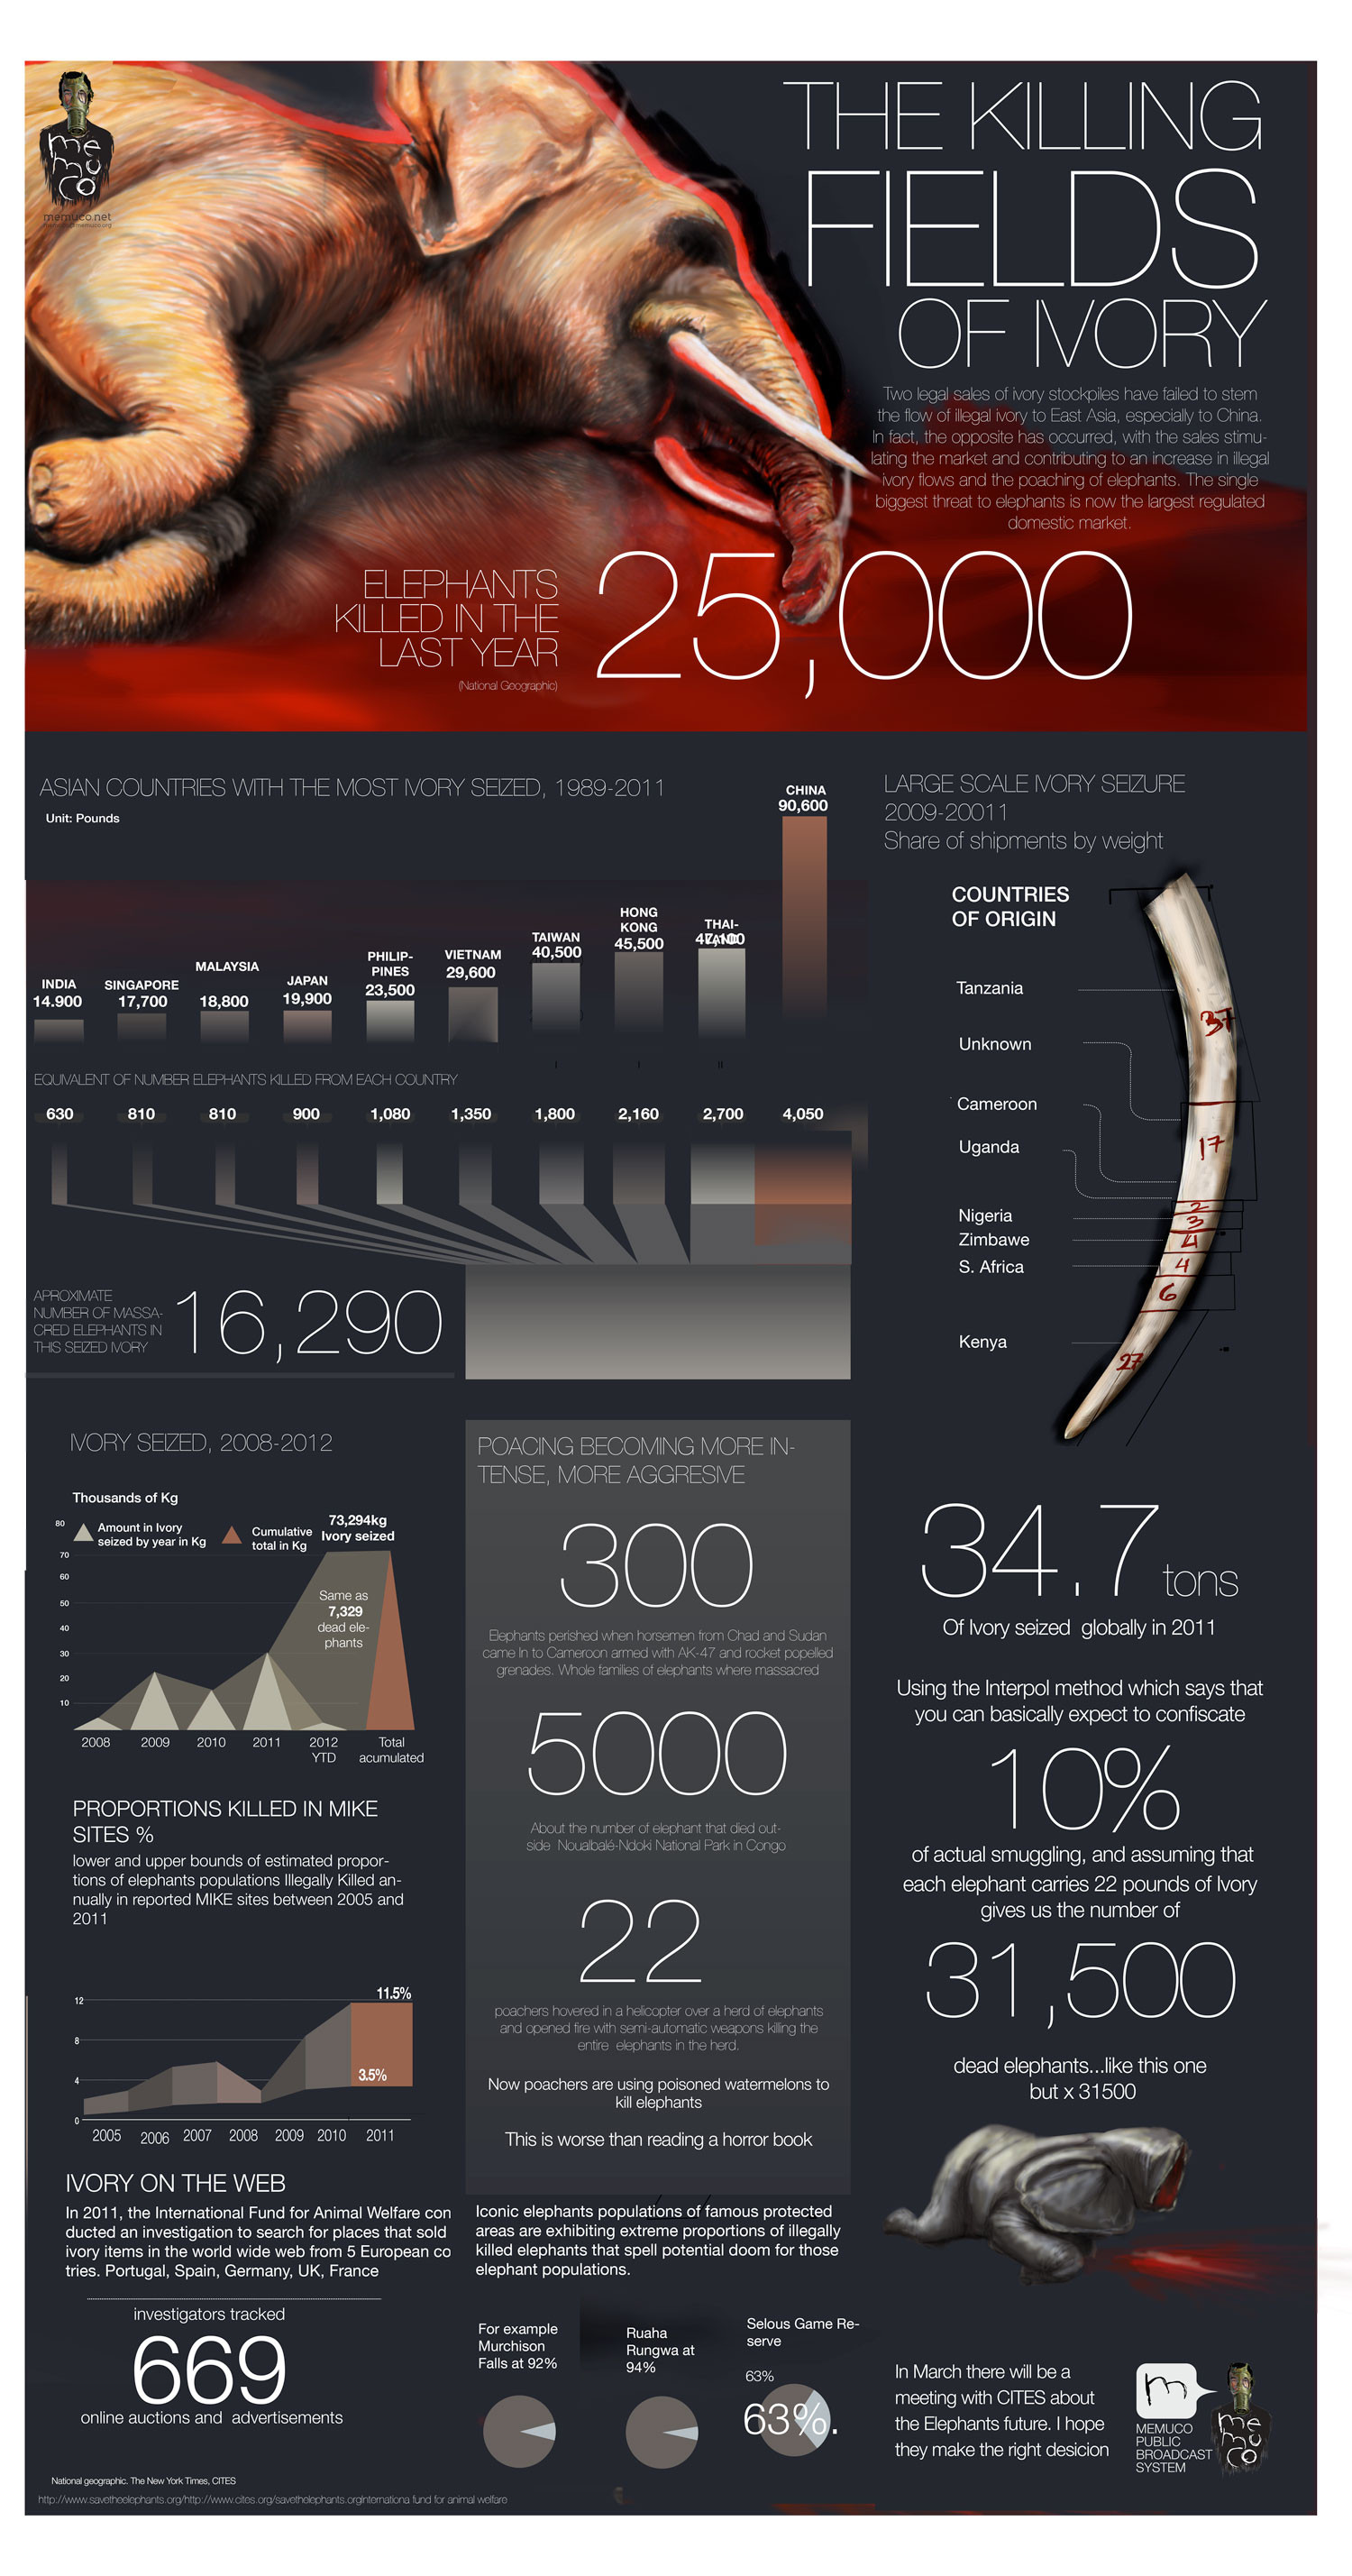 The Killing fields of Ivory Infographic